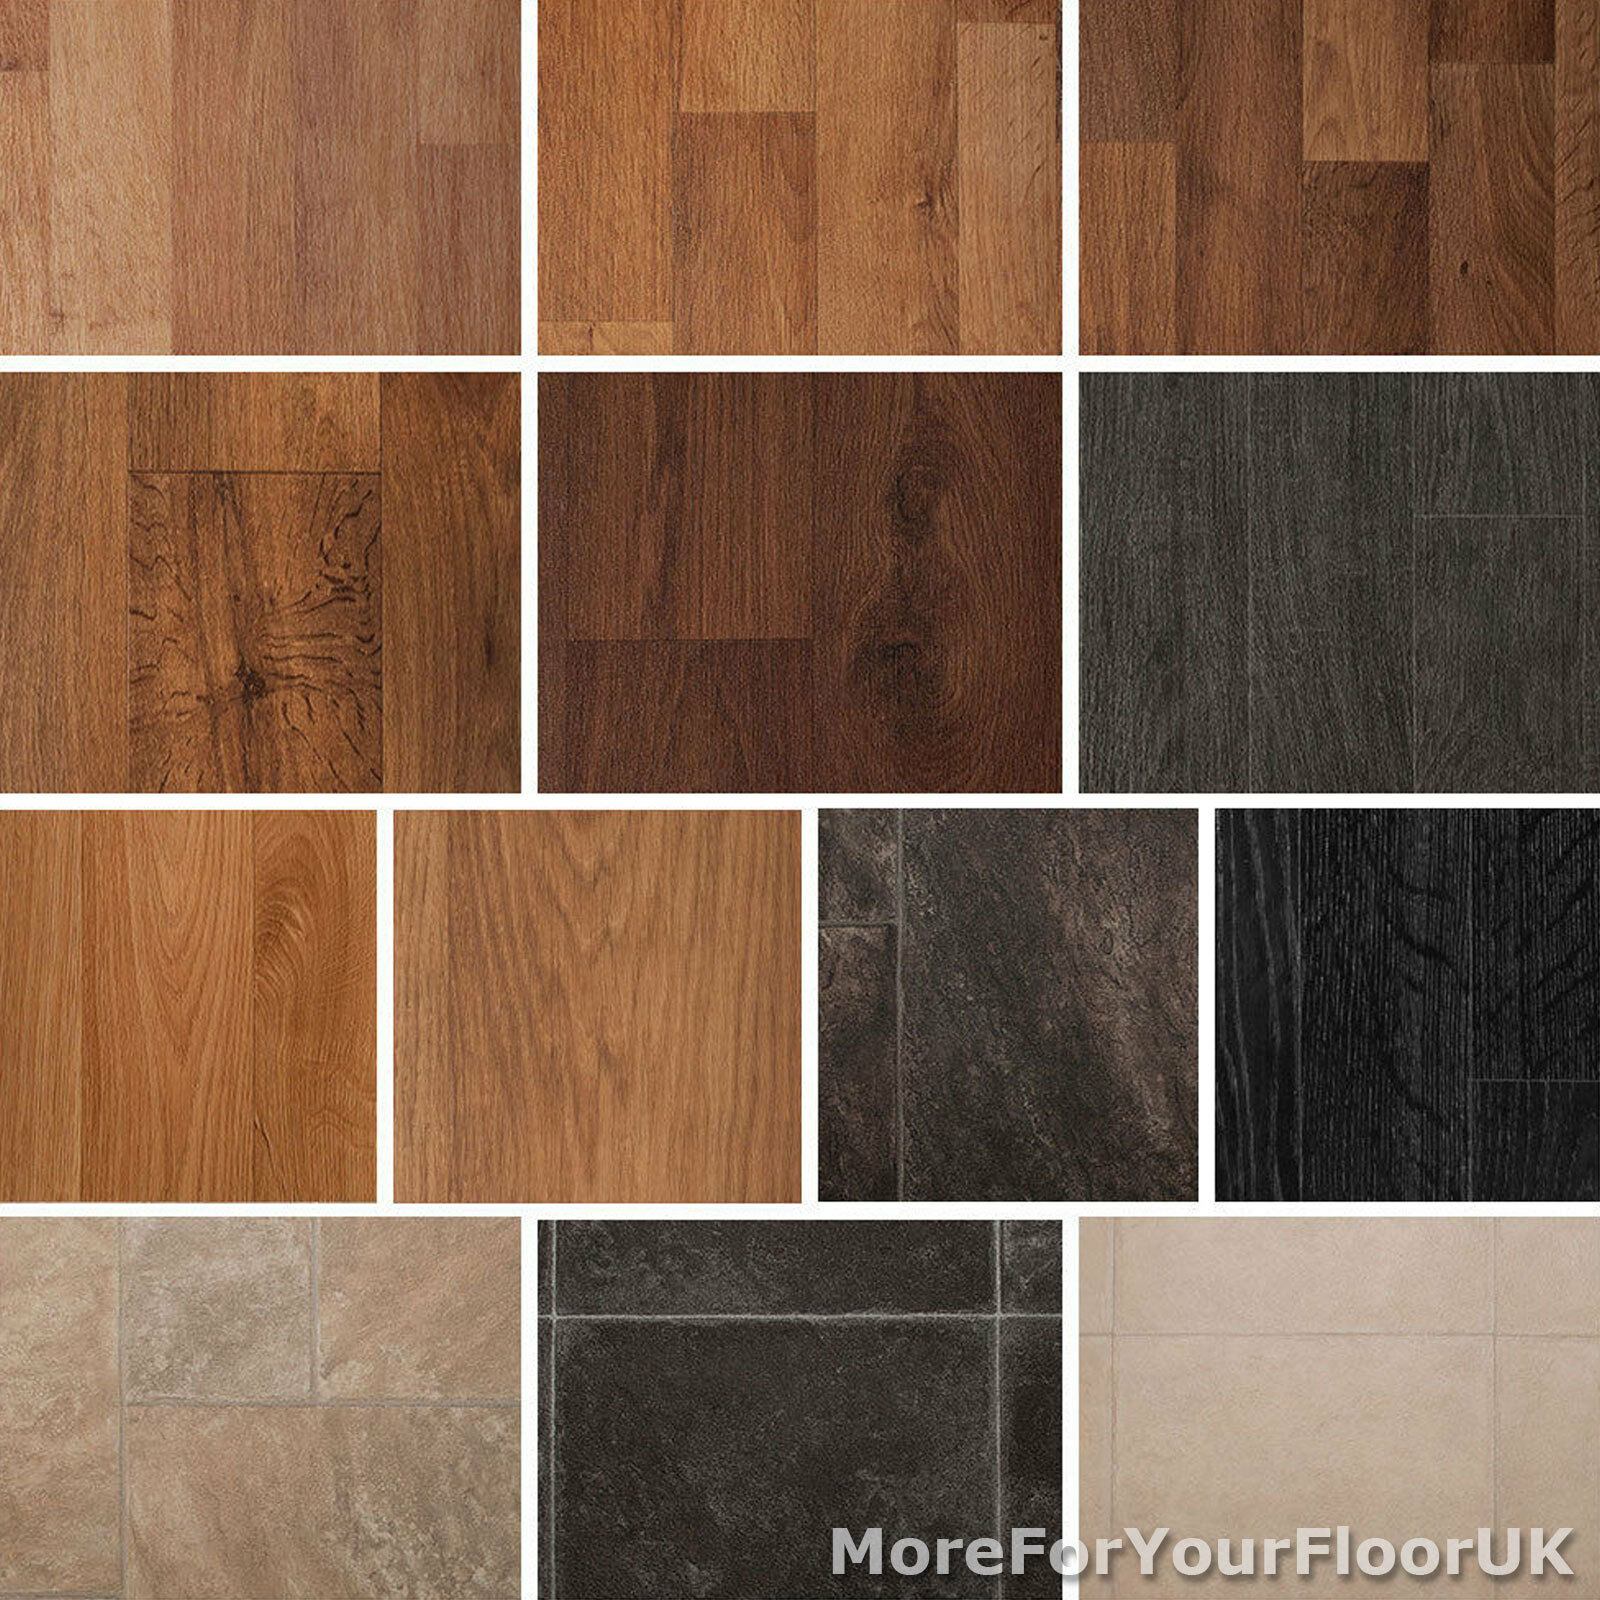 Cheap Floor Tiles Uk Cheap Bathroom Vinyl Floor Tiles 8mm Bottocino High Gloss Cream Laminate